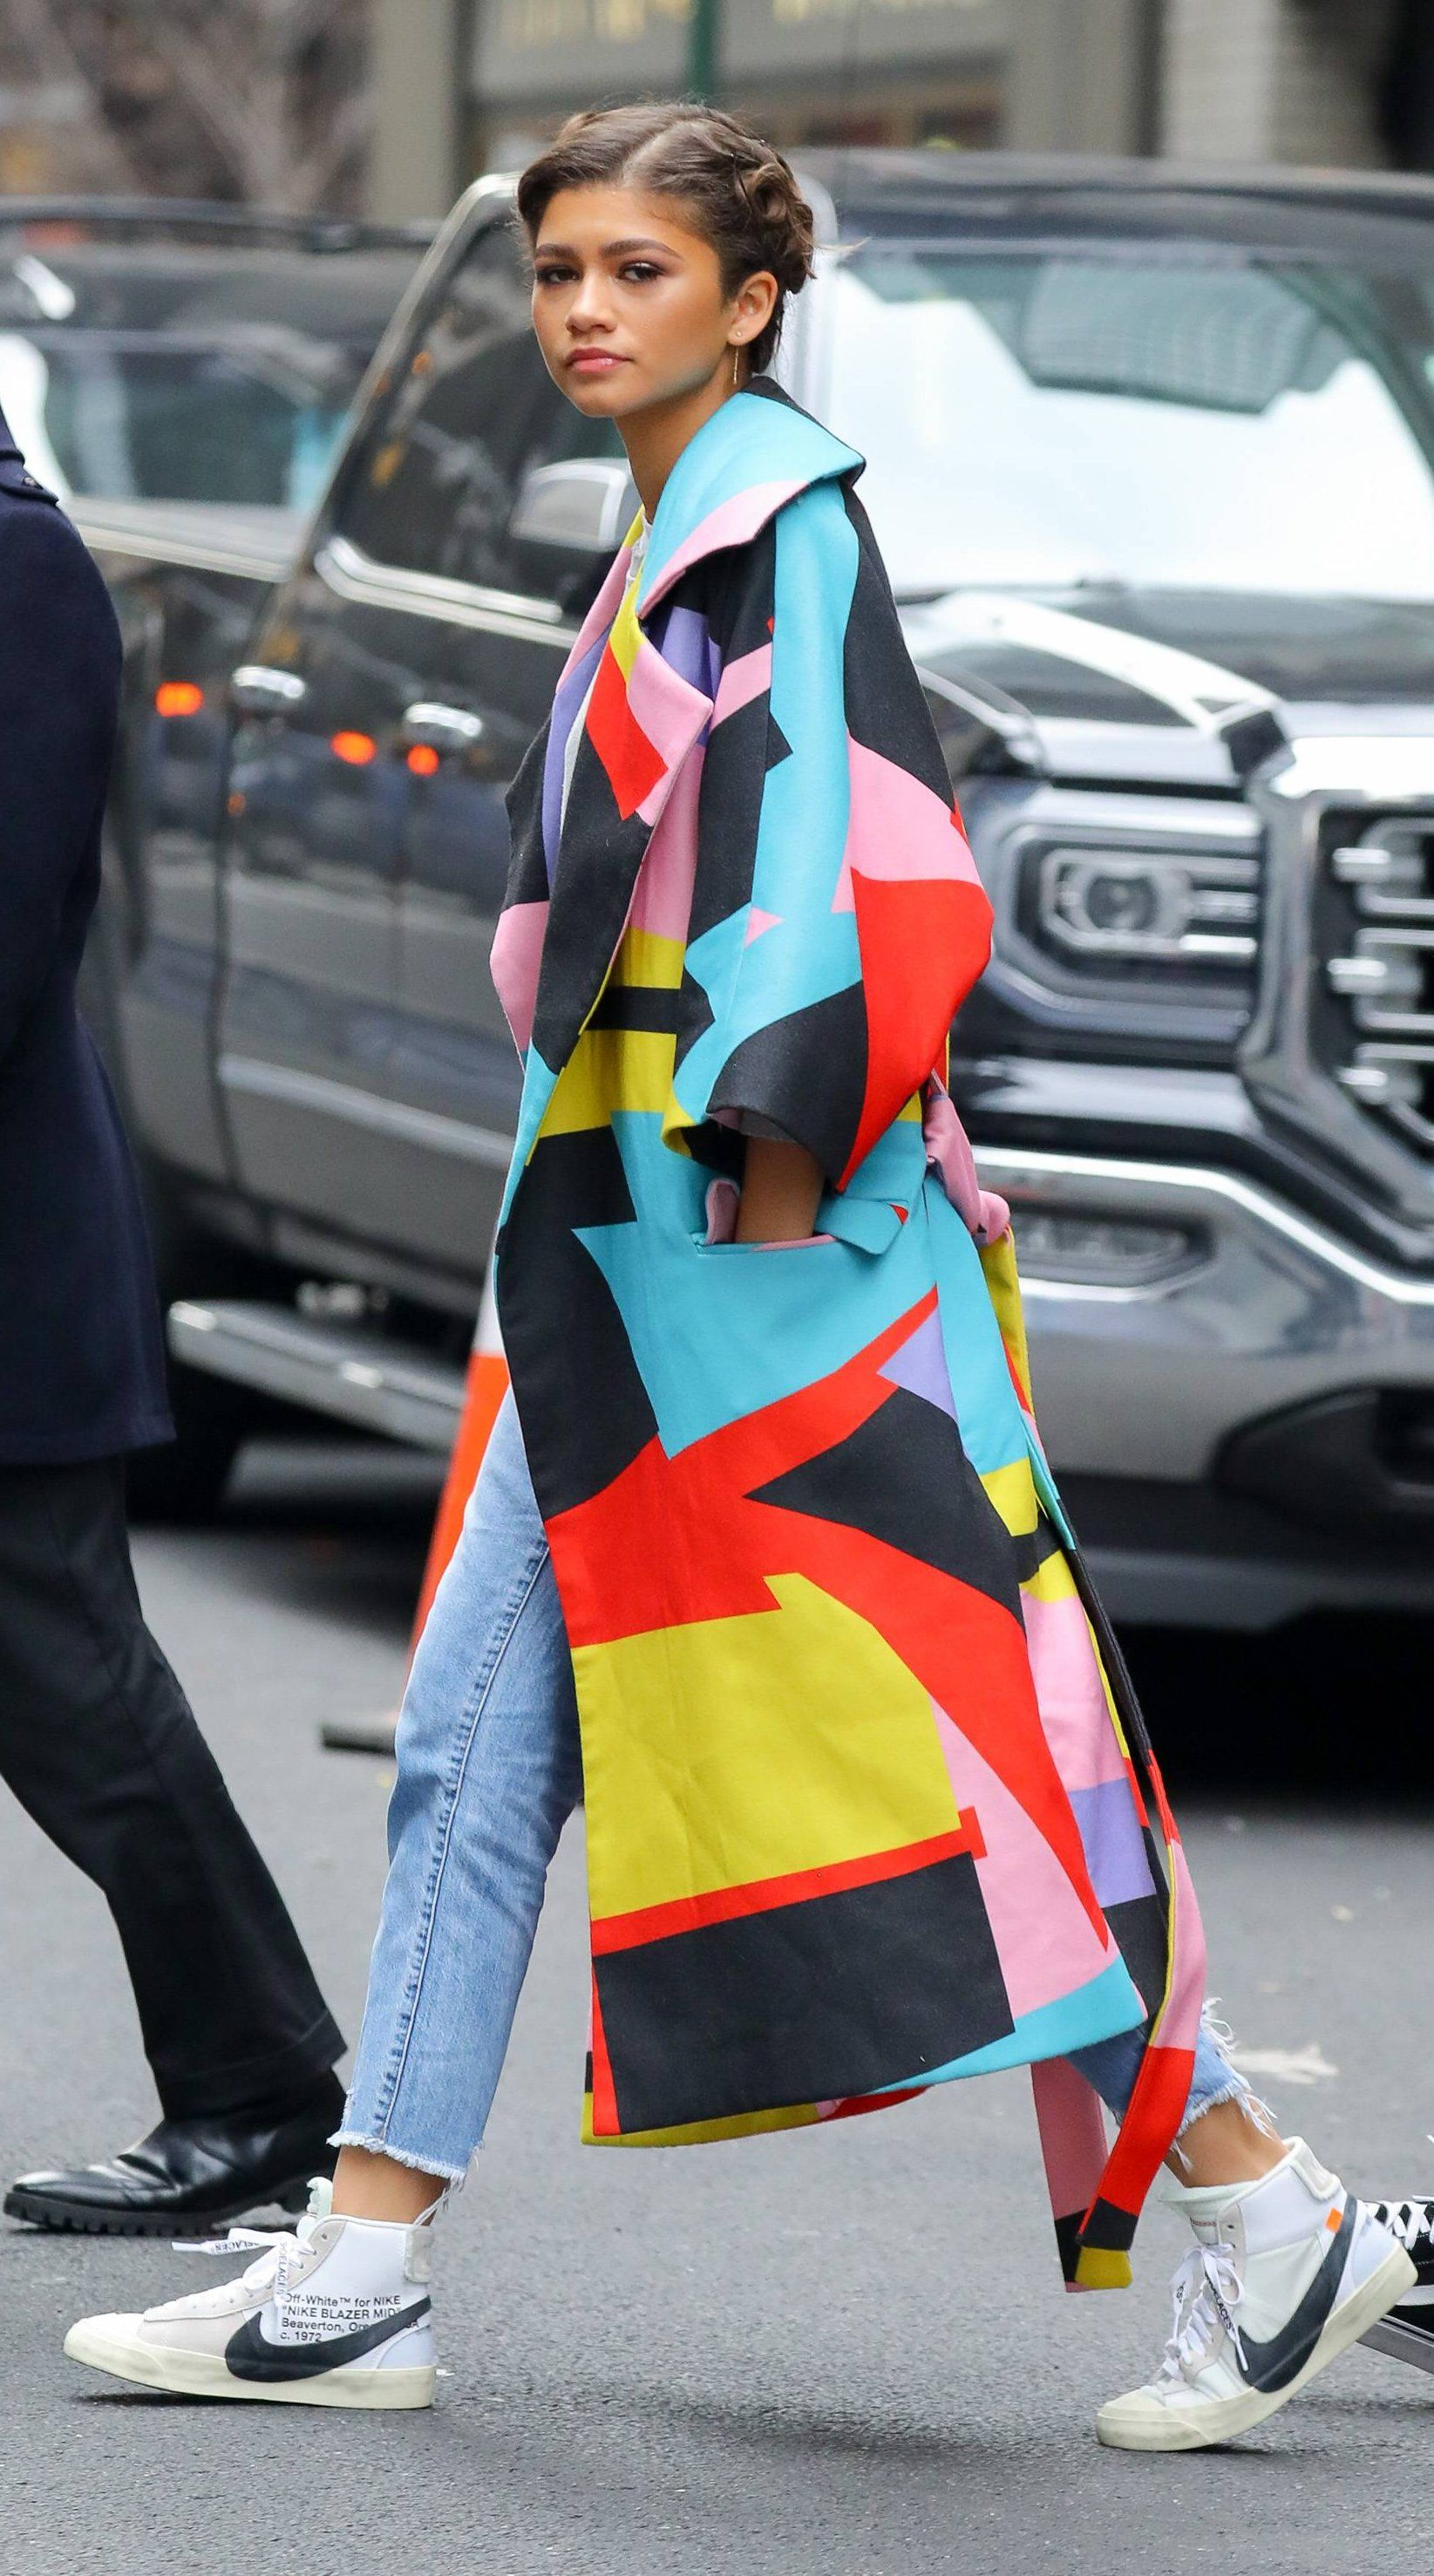 Zendaya wore a Maria Escoté Spring 2018 colorblock graphic coat while  taping an appearance on